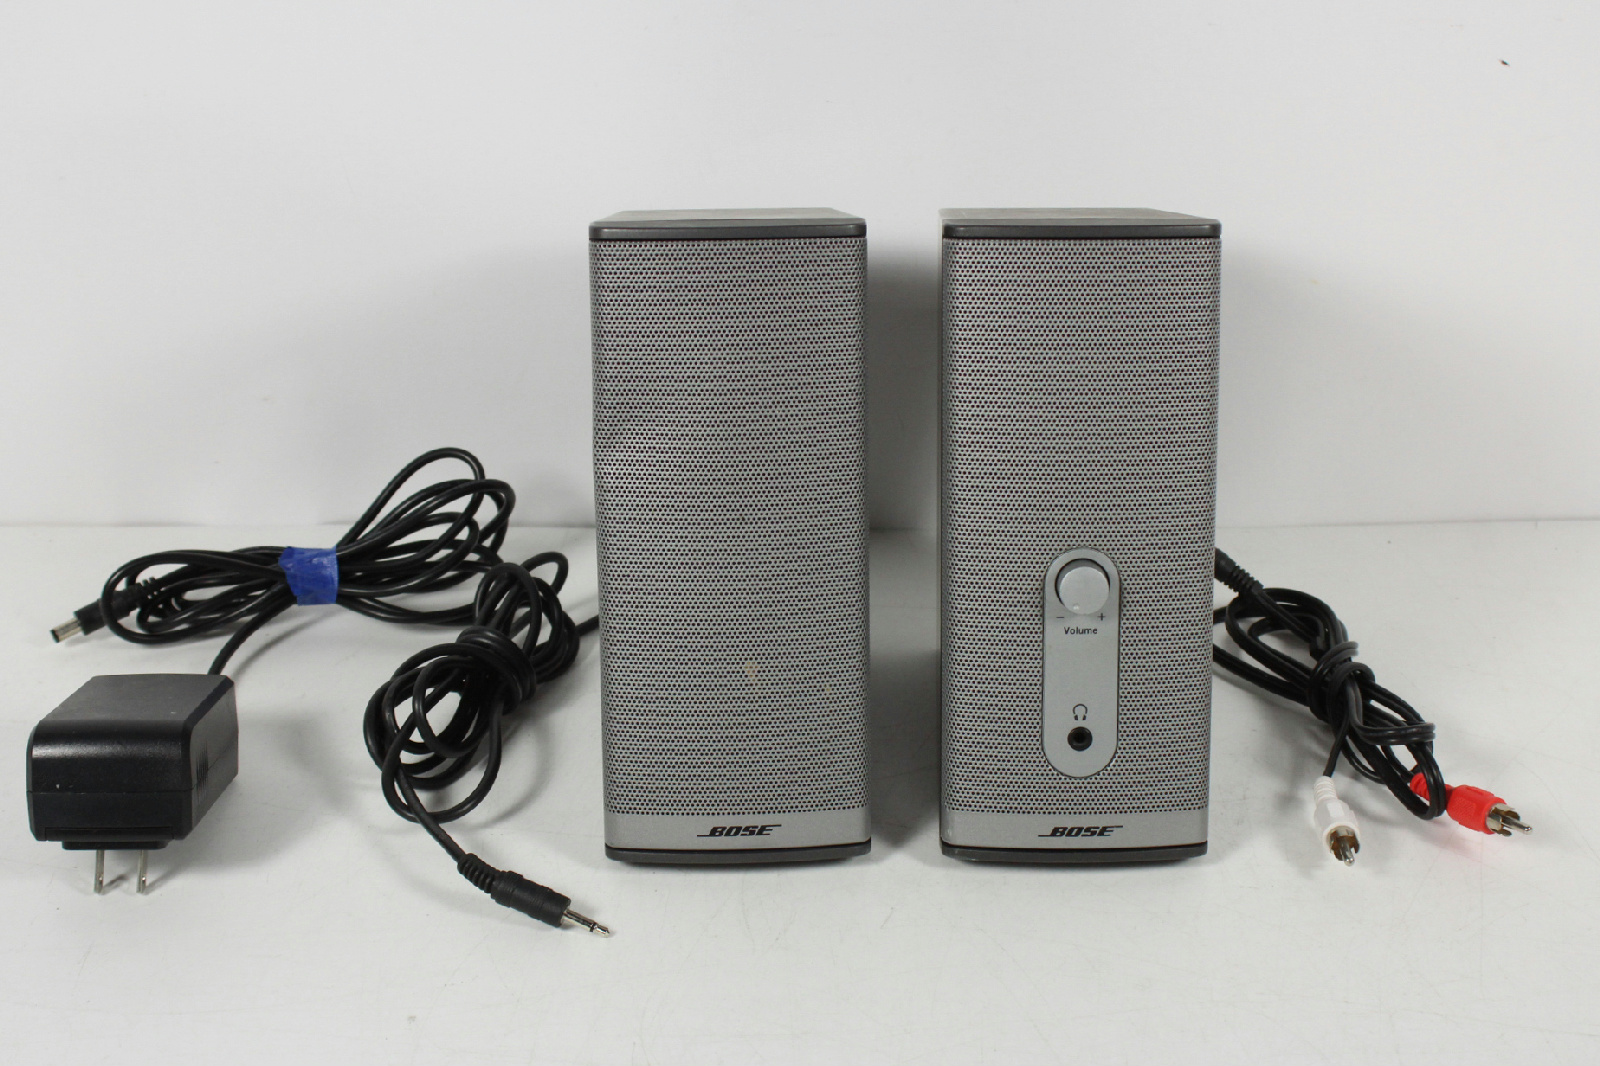 bose companion 2 series ii multimedia speaker system connecting cables 17817392815 ebay. Black Bedroom Furniture Sets. Home Design Ideas